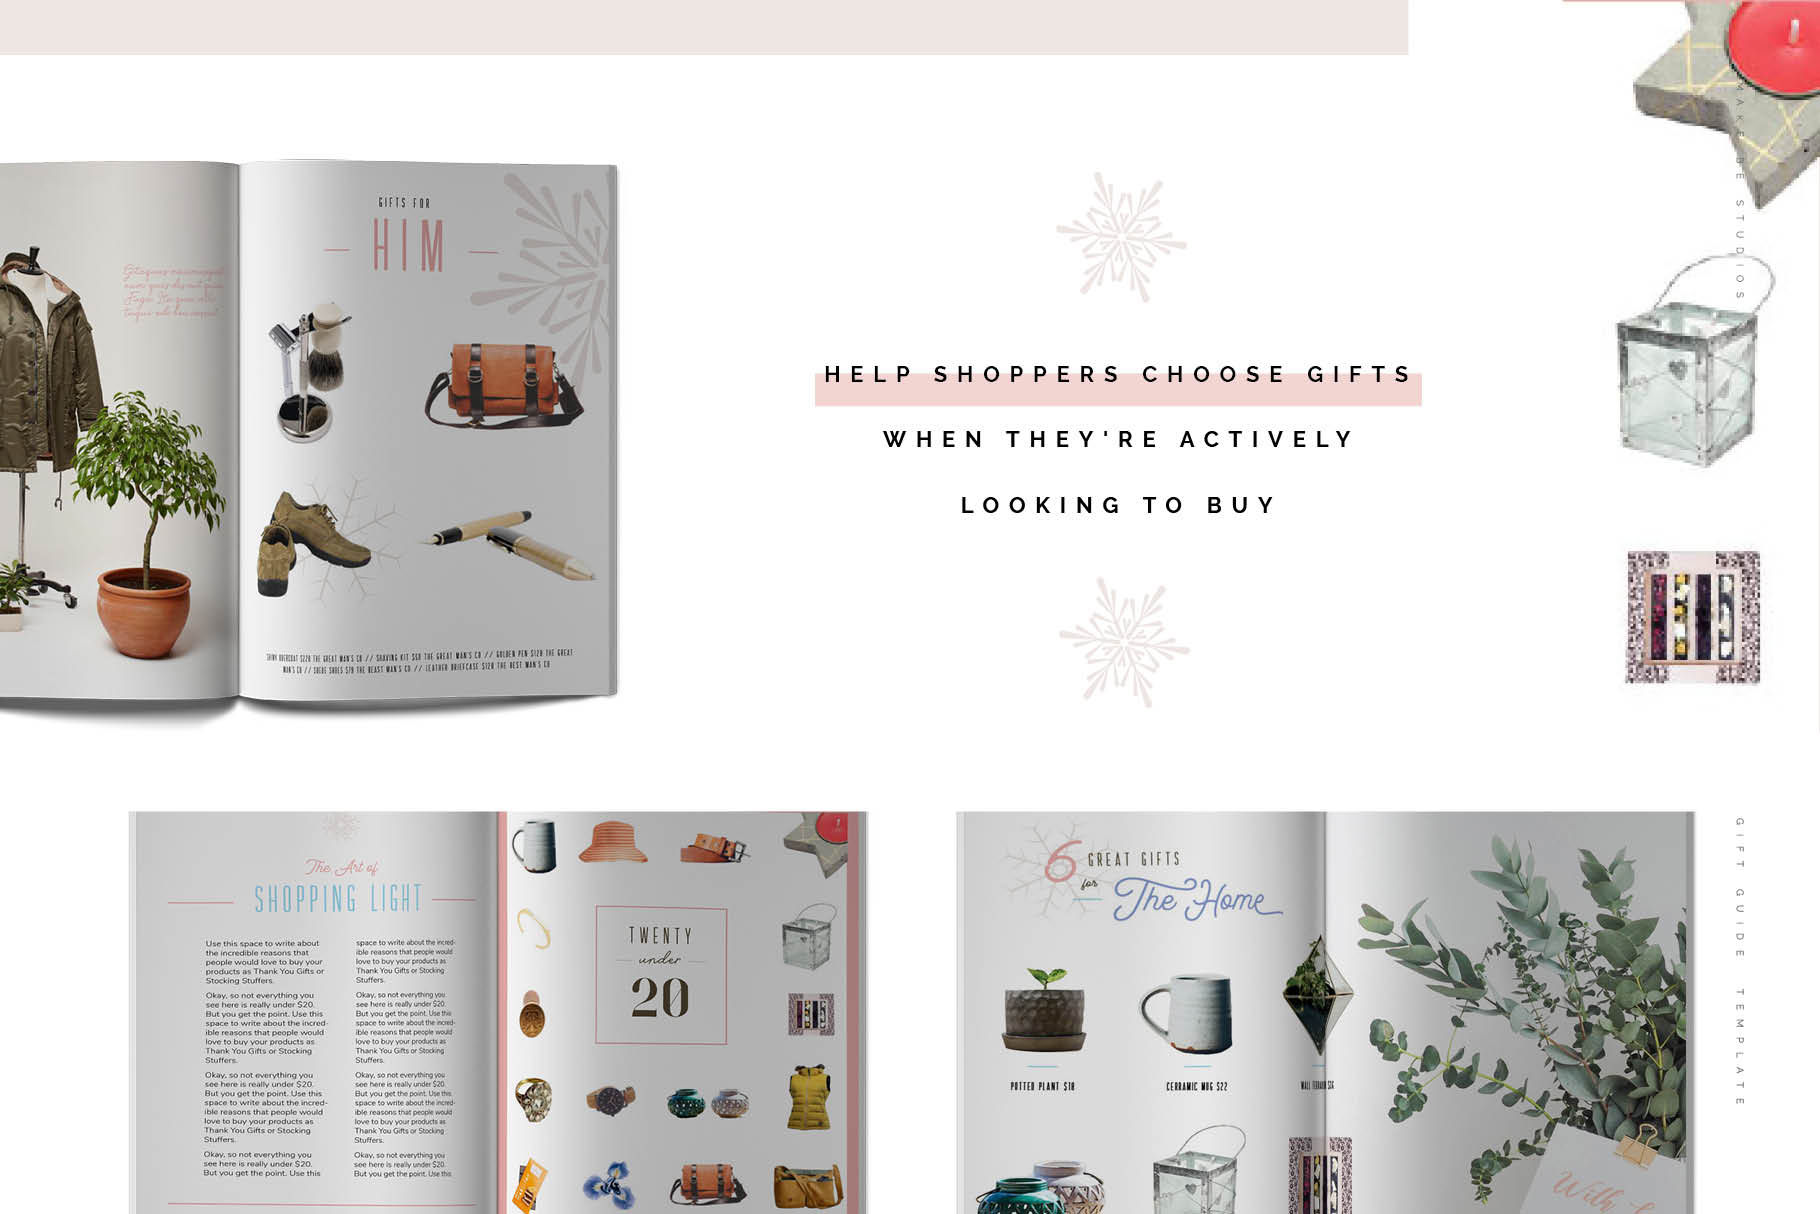 Holiday Gift Guide Promotional Images2.jpg